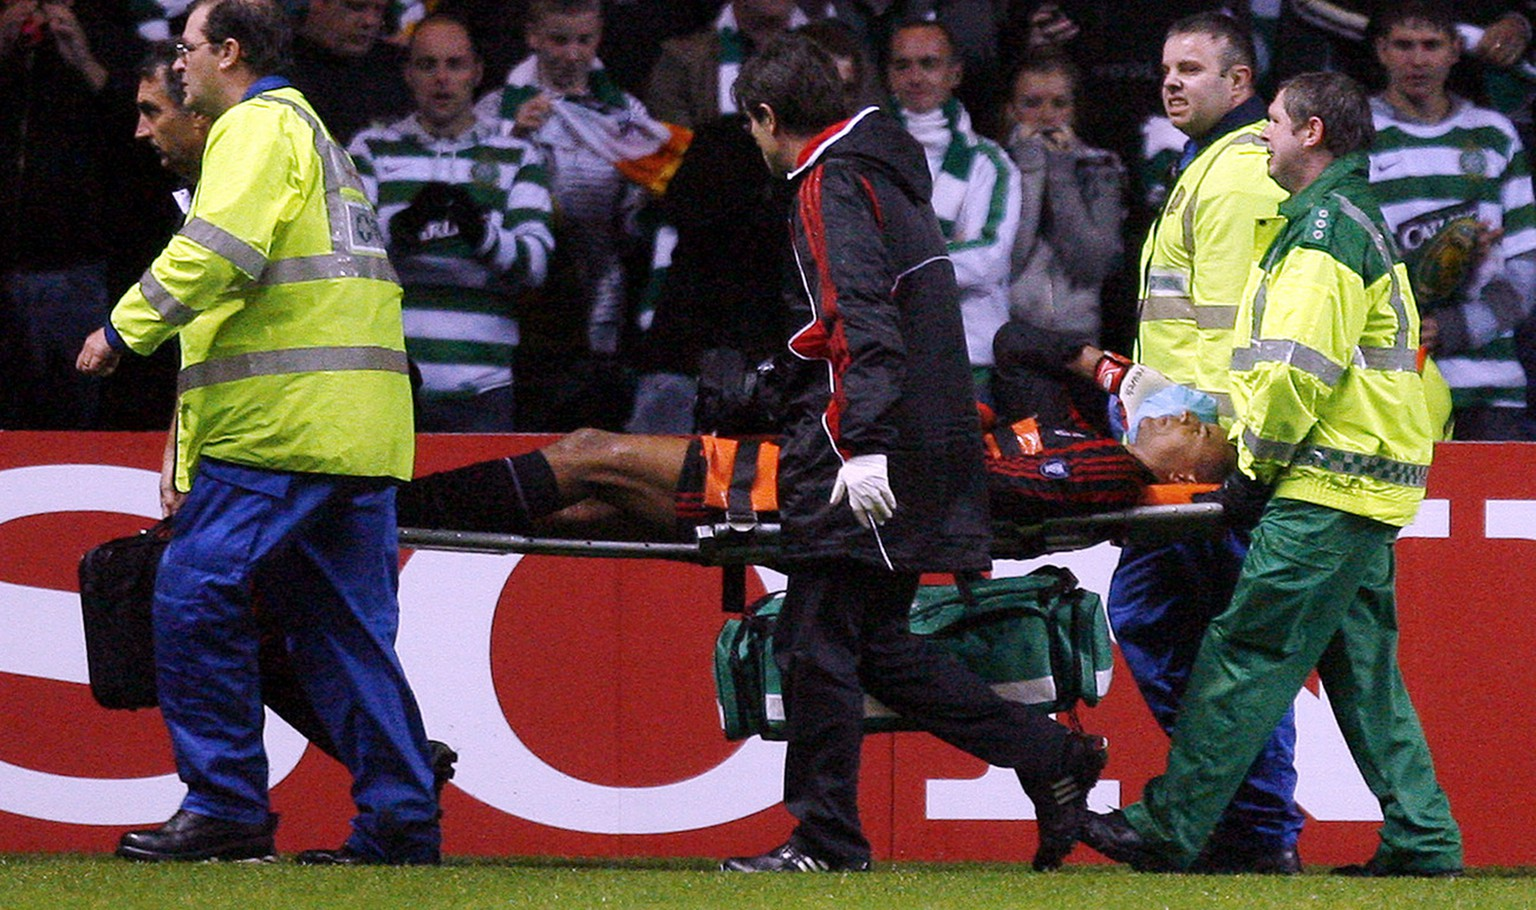 AC Milan's goalkeeper Dida is carried off after an incident with  a Celtic fan during their Champions League, Group D, soccer match at Celtic Park, Glasgow, Scotland, Wednesday Oct. 3, 2007. (AP Photo/Scott Heppell)